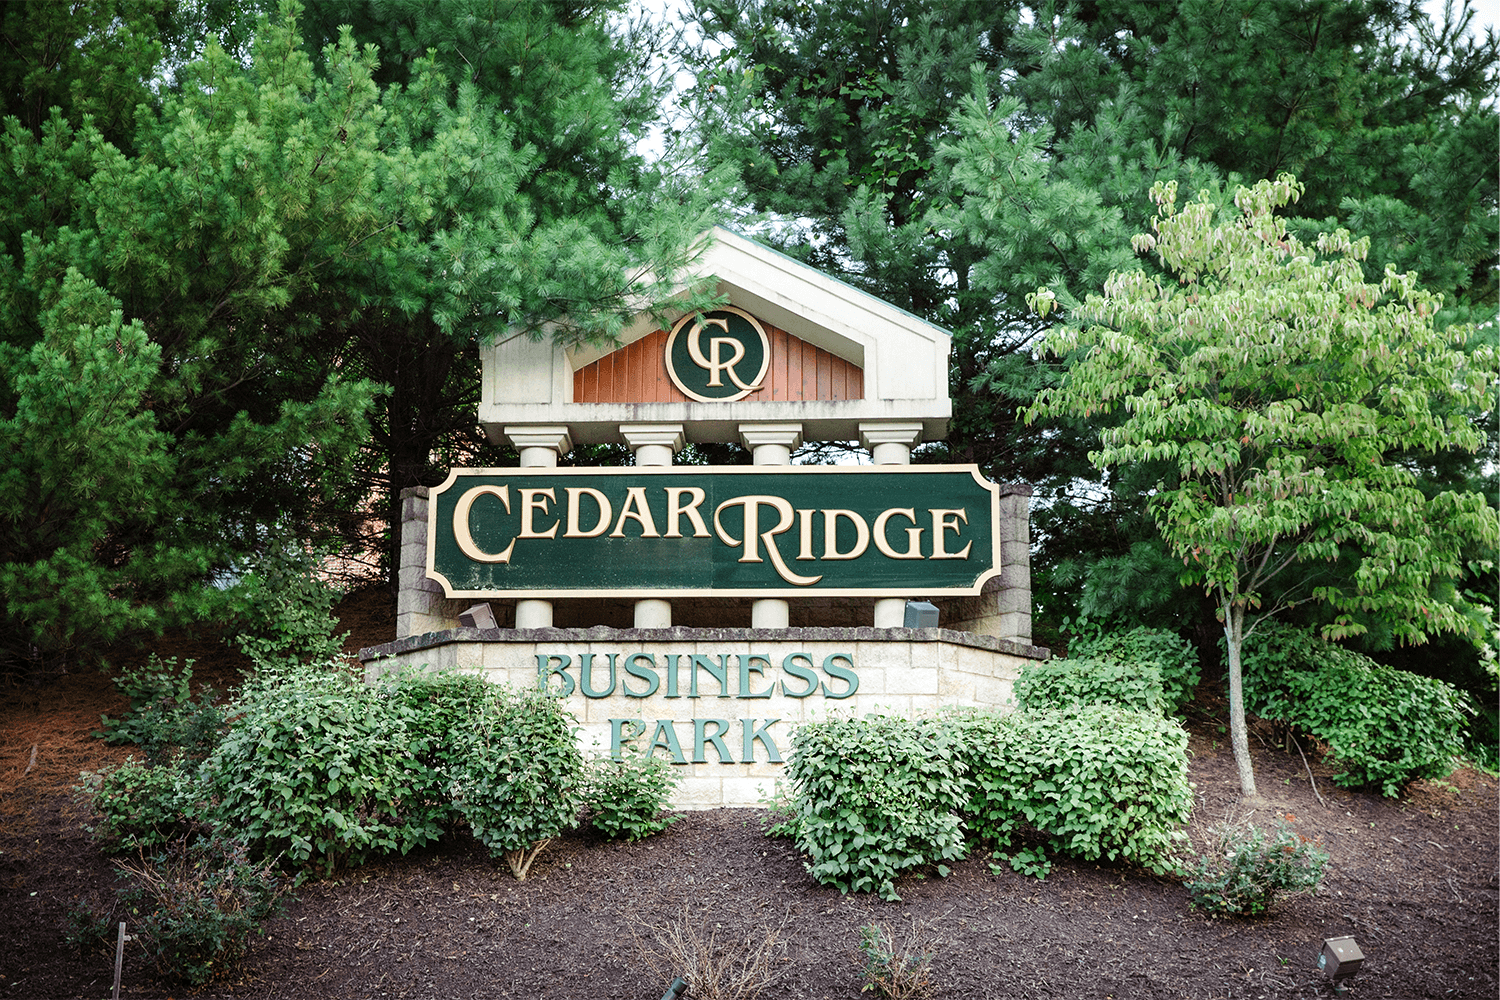 Cedar Ridge Business Park monument sign surrounded by bushes and trees